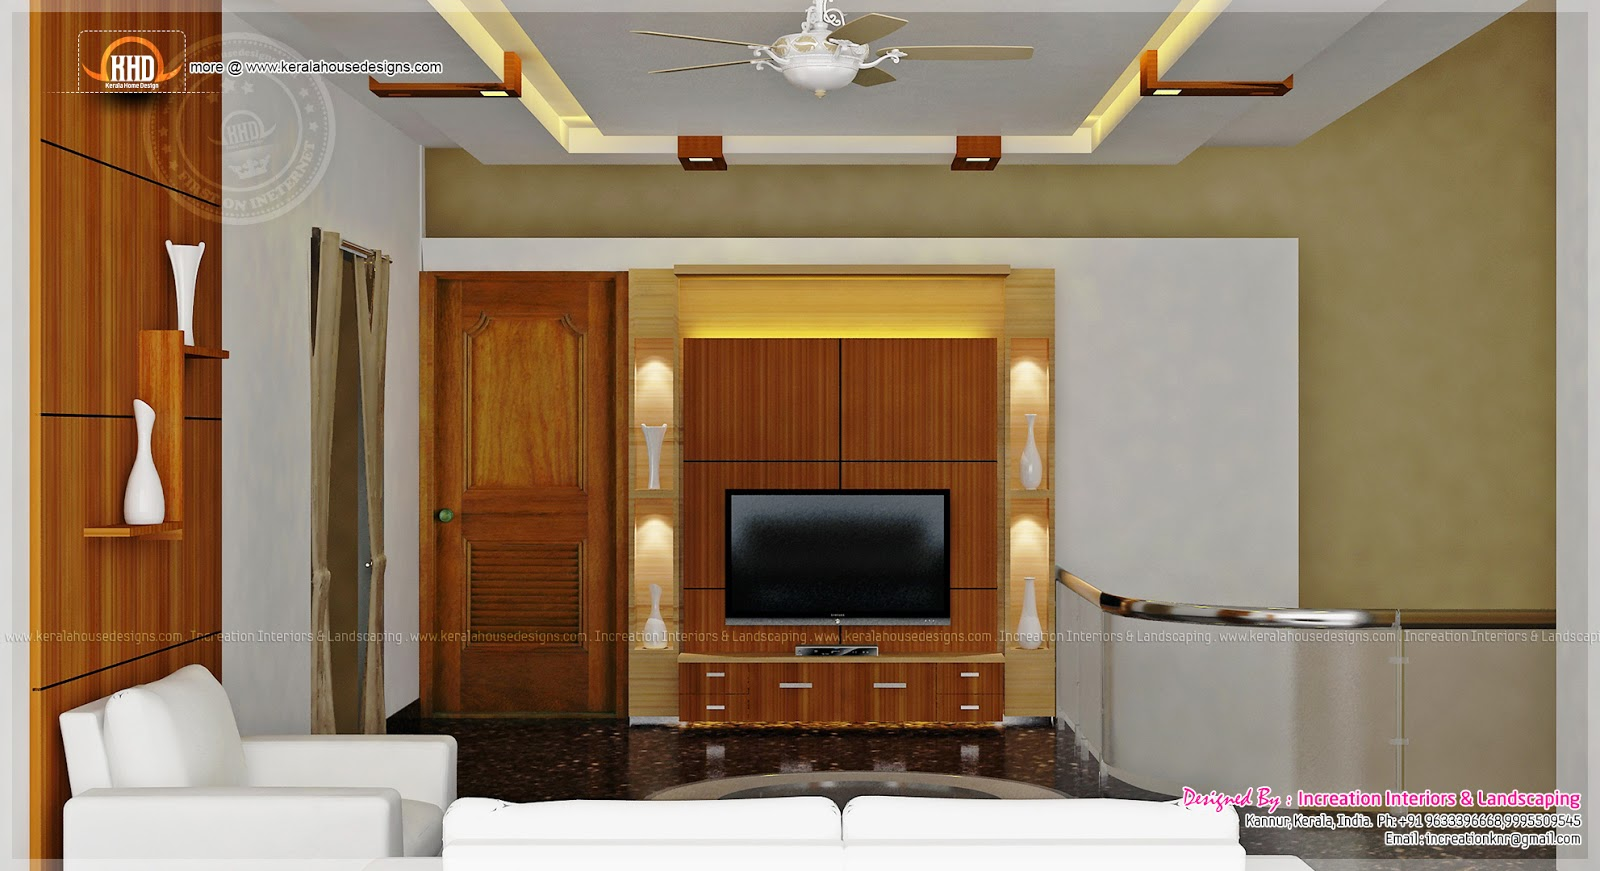 Home interior designs by Increation | Home Kerala Plans